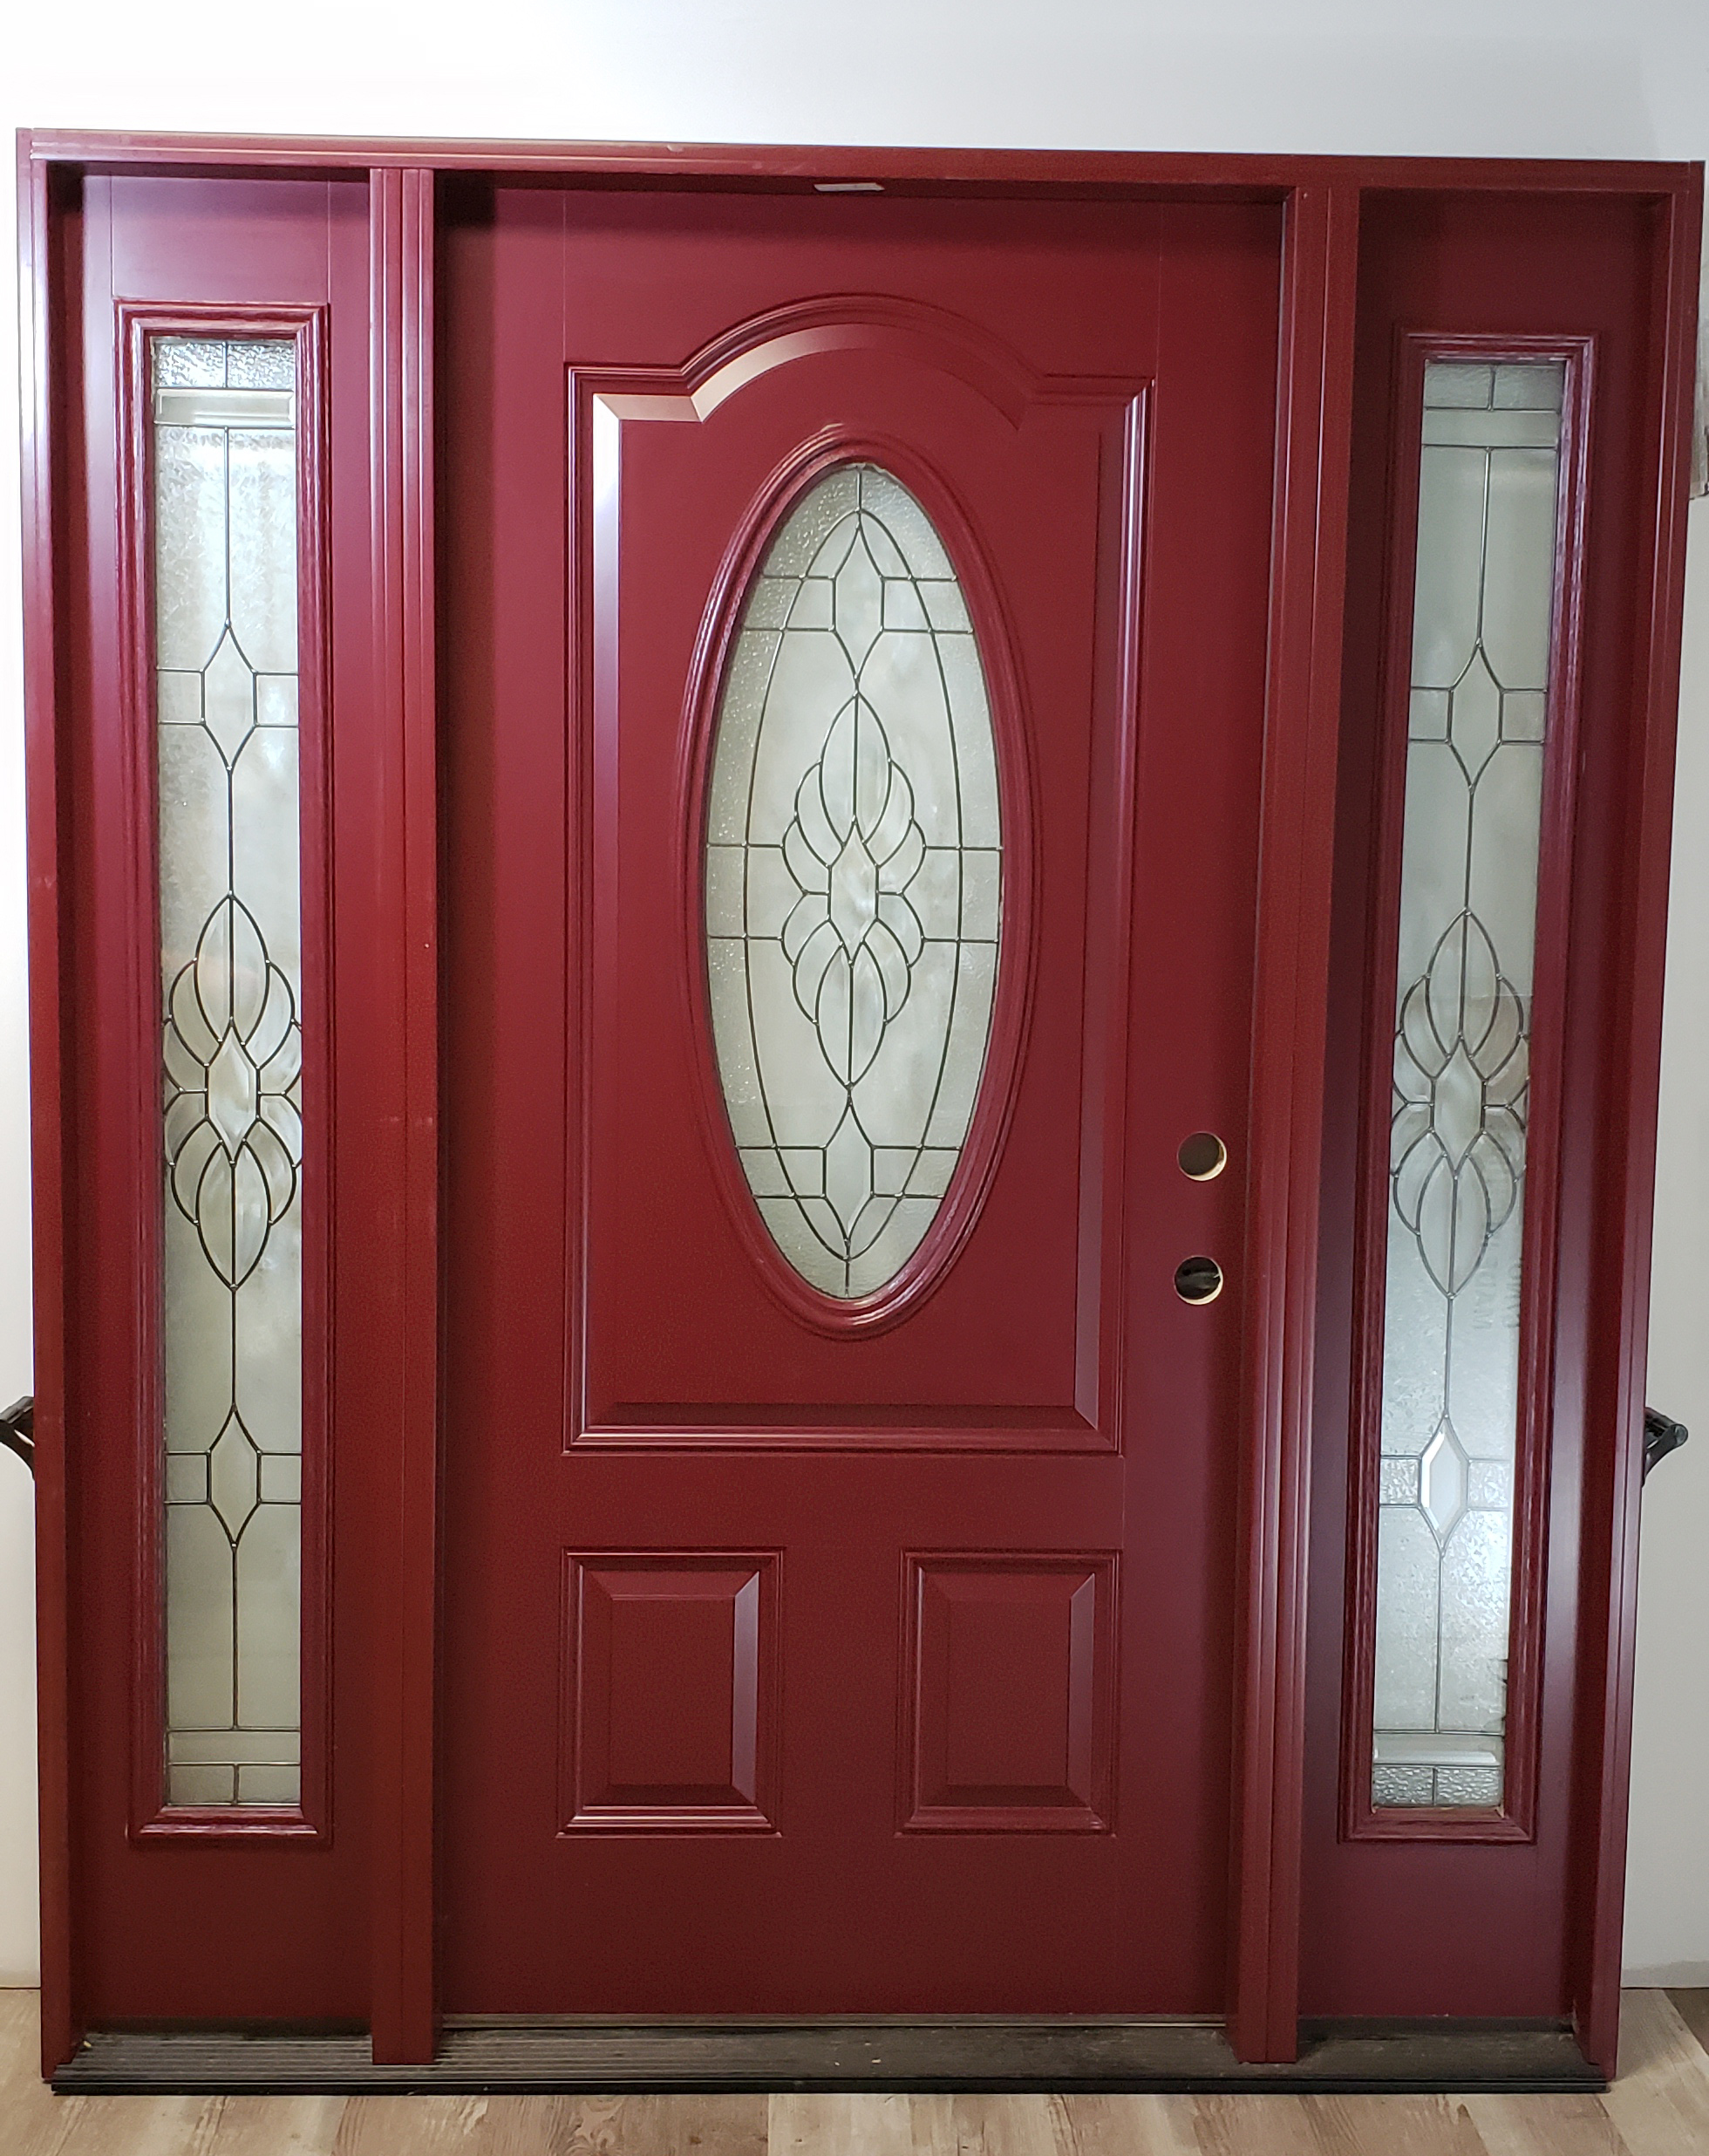 fiberglass-entry-oval-glass-sidelights-exterior-door-red-finish